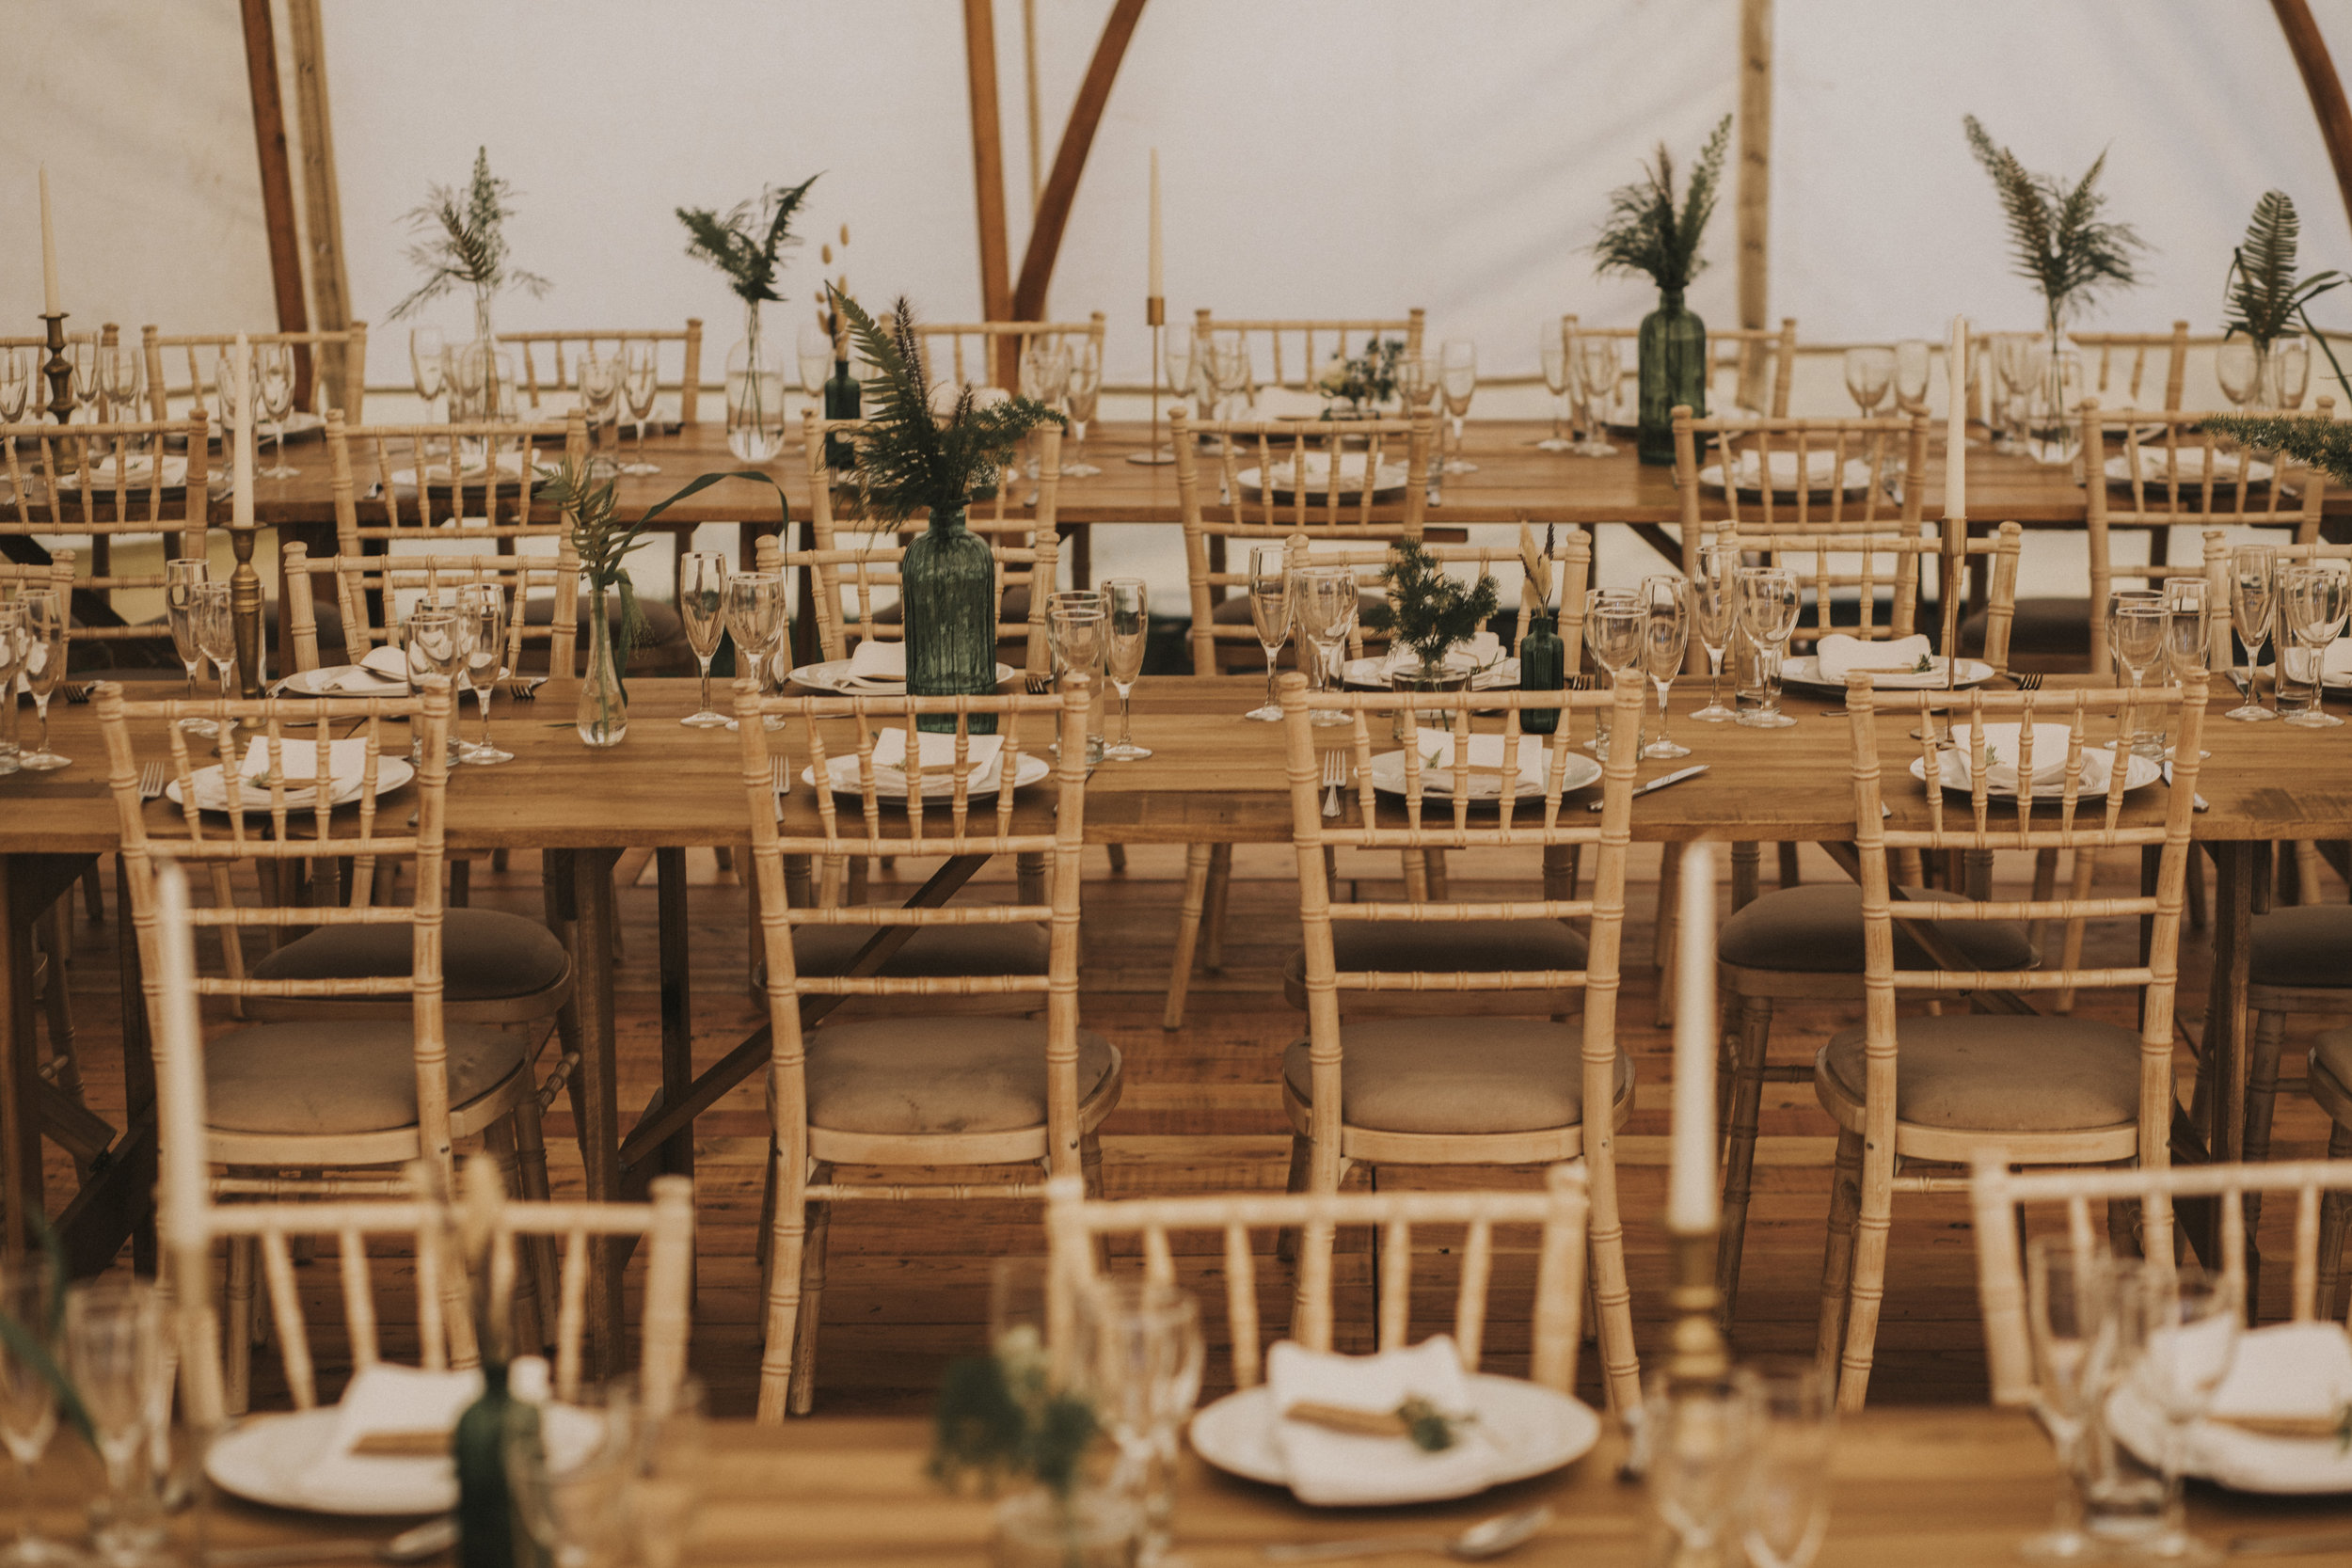 Table and chairs ins sperry tent, festival wedding